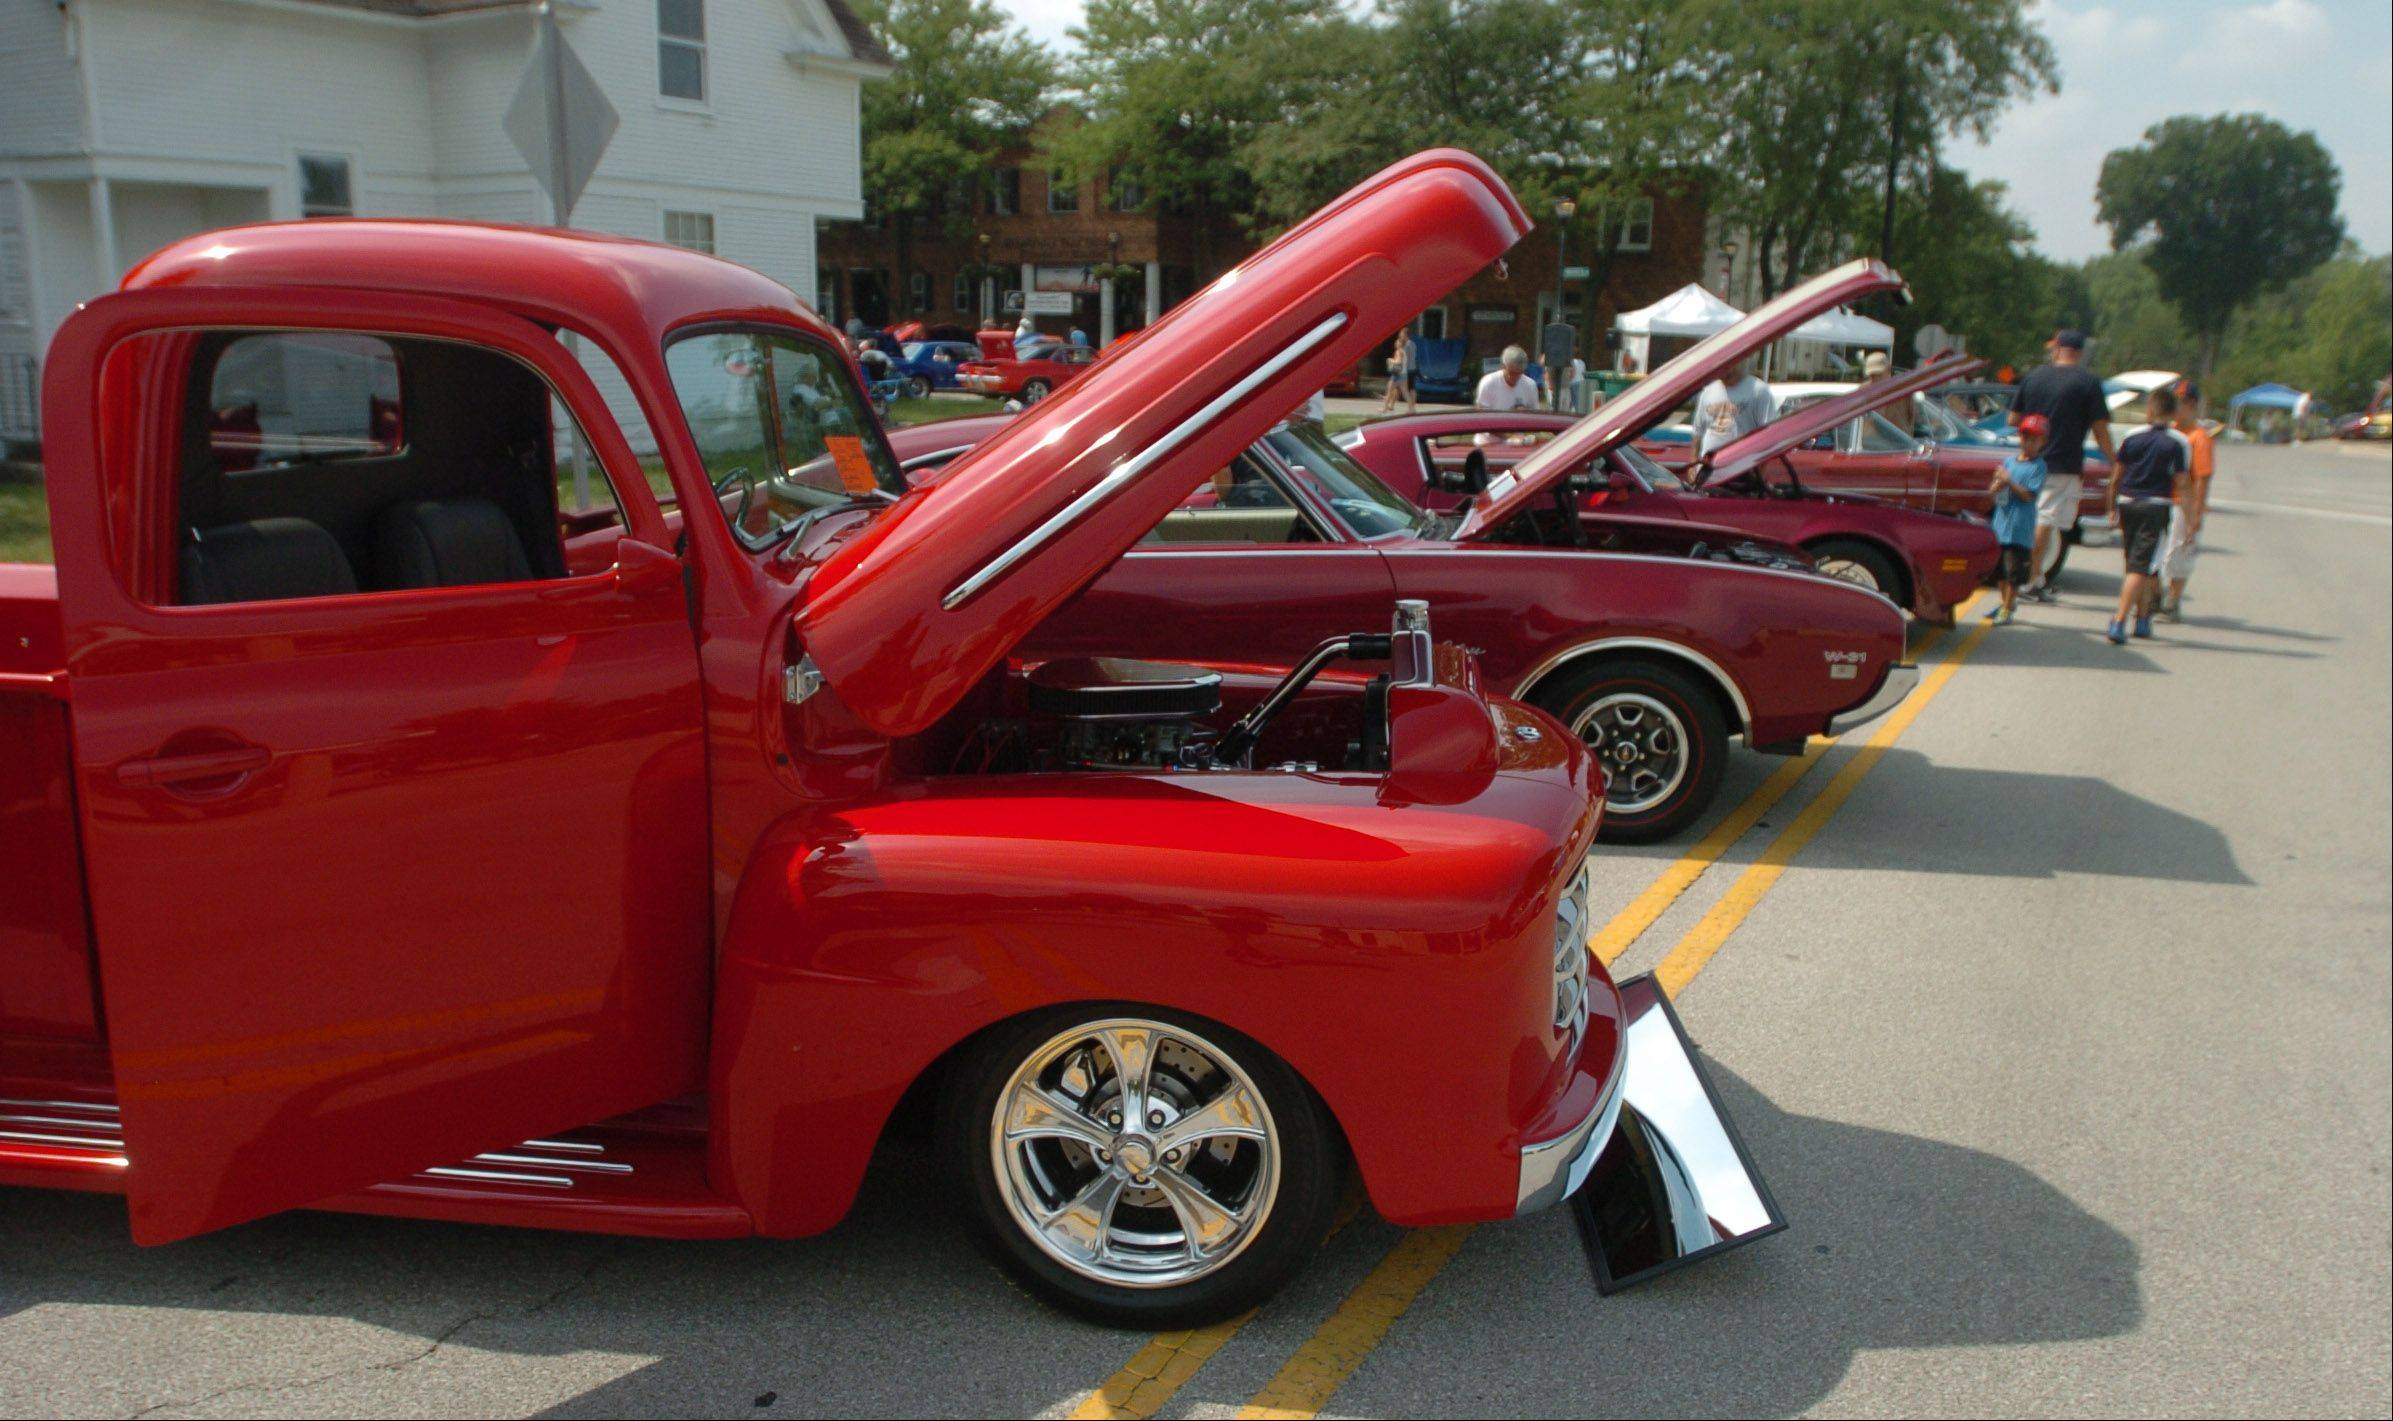 Saturday�s car show at the Summer Daze celebration in Warrenville will be one of the highlights of the two-day event.